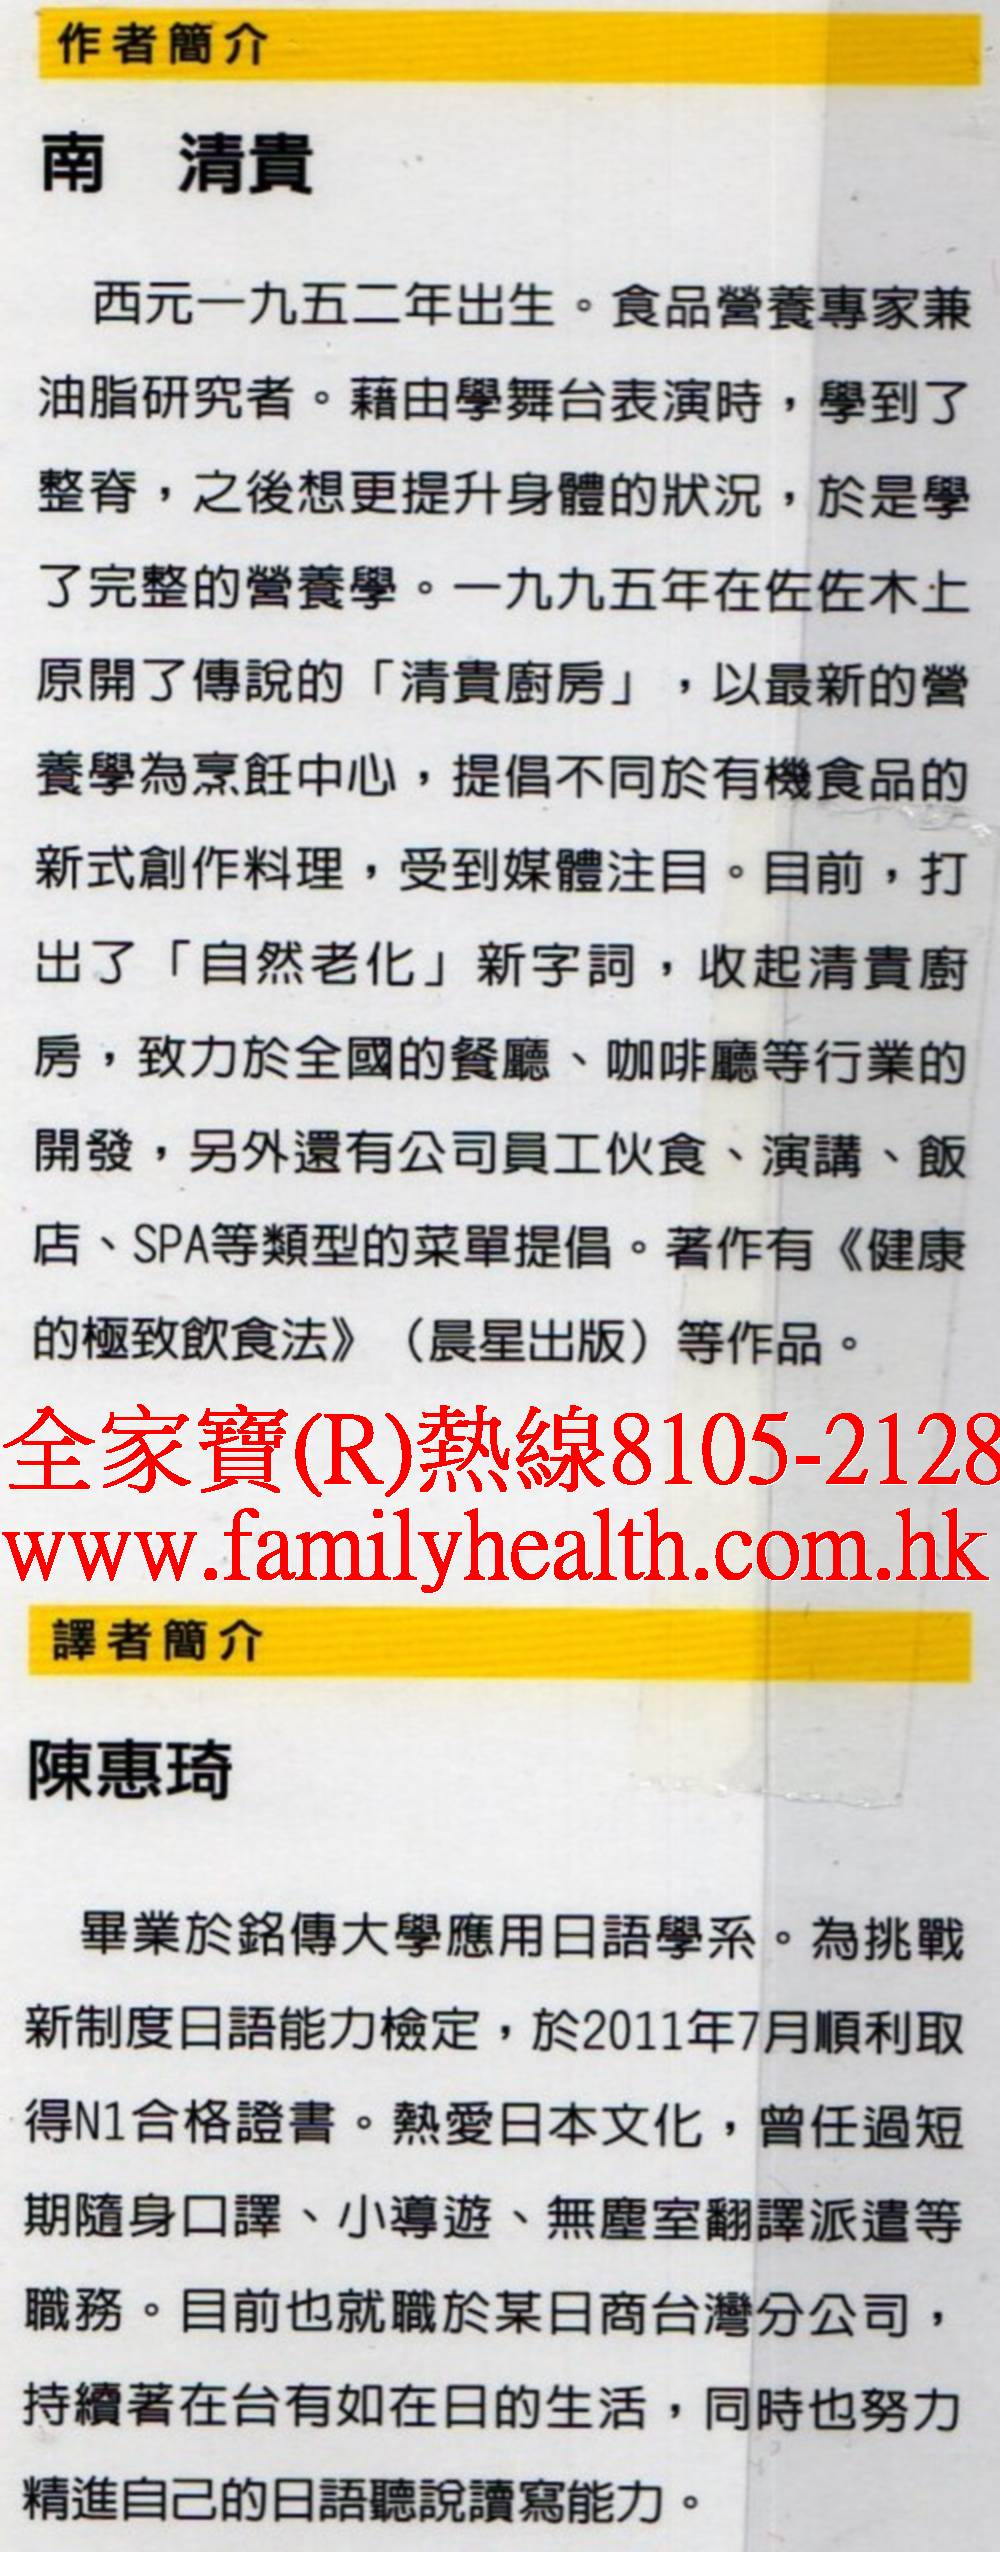 http://www.familyhealth.com.hk/files/full/974_2.jpg